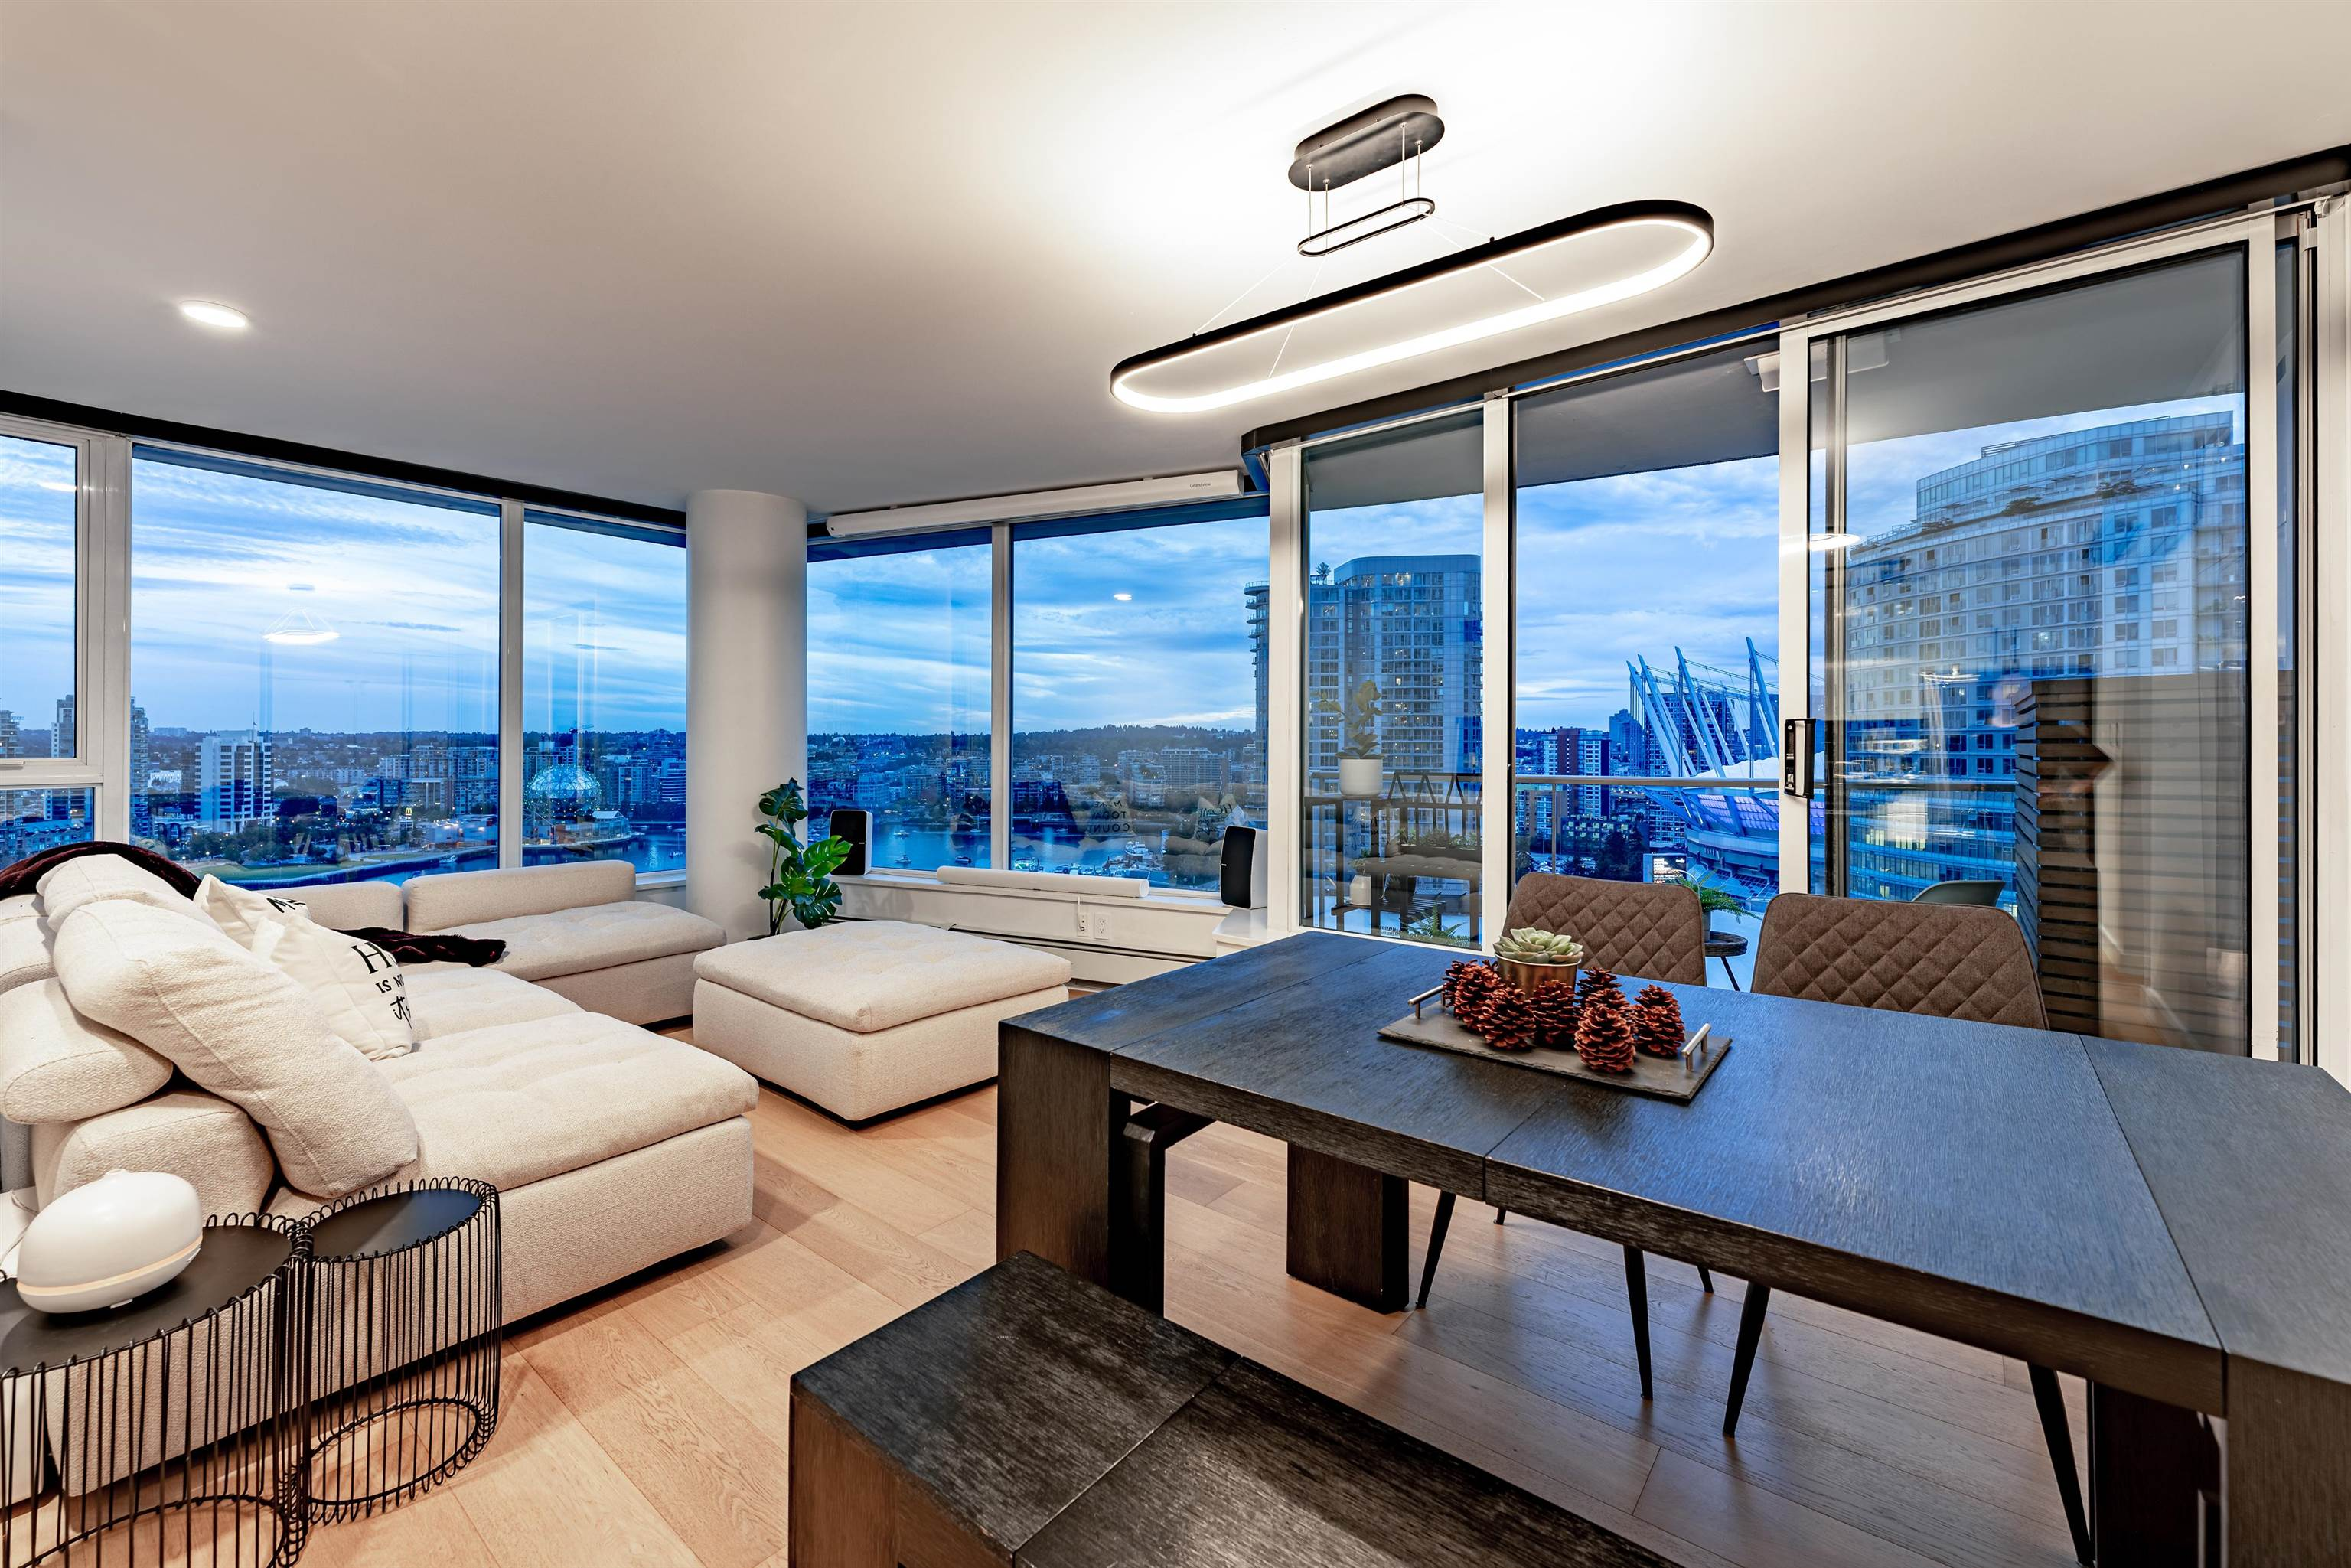 2505 689 ABBOTT STREET - Downtown VW Apartment/Condo for sale, 2 Bedrooms (R2620497) - #1